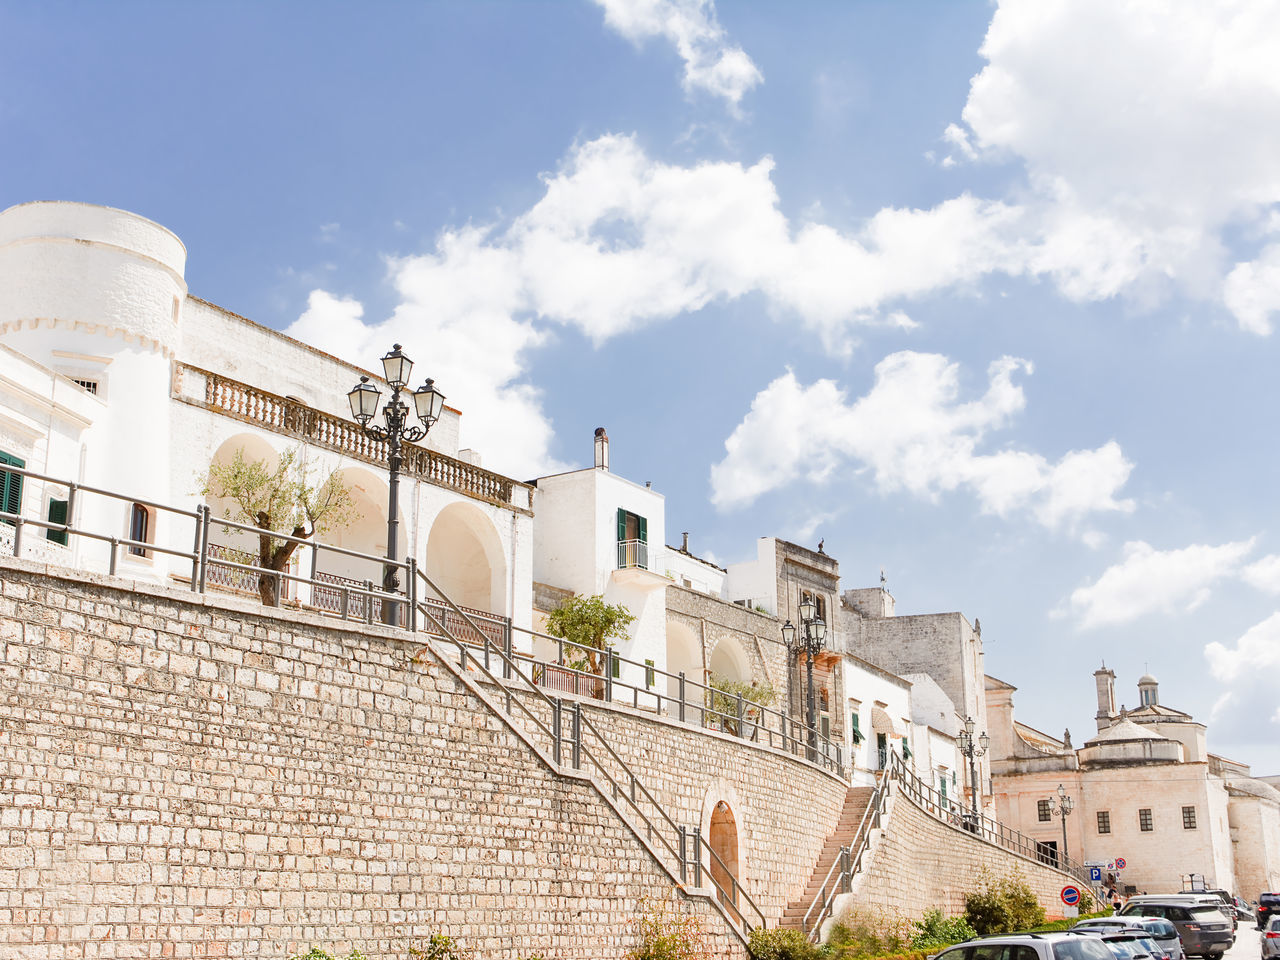 Amati Palace in Cisternino (Puglia - Italy) Alley Alleyway Amati Apúlia Architecture Borgo Brindisi Cisternino City Fasano House Italy Itria Low Angle View Ostuni Puglia Road Salento Street Valley Village